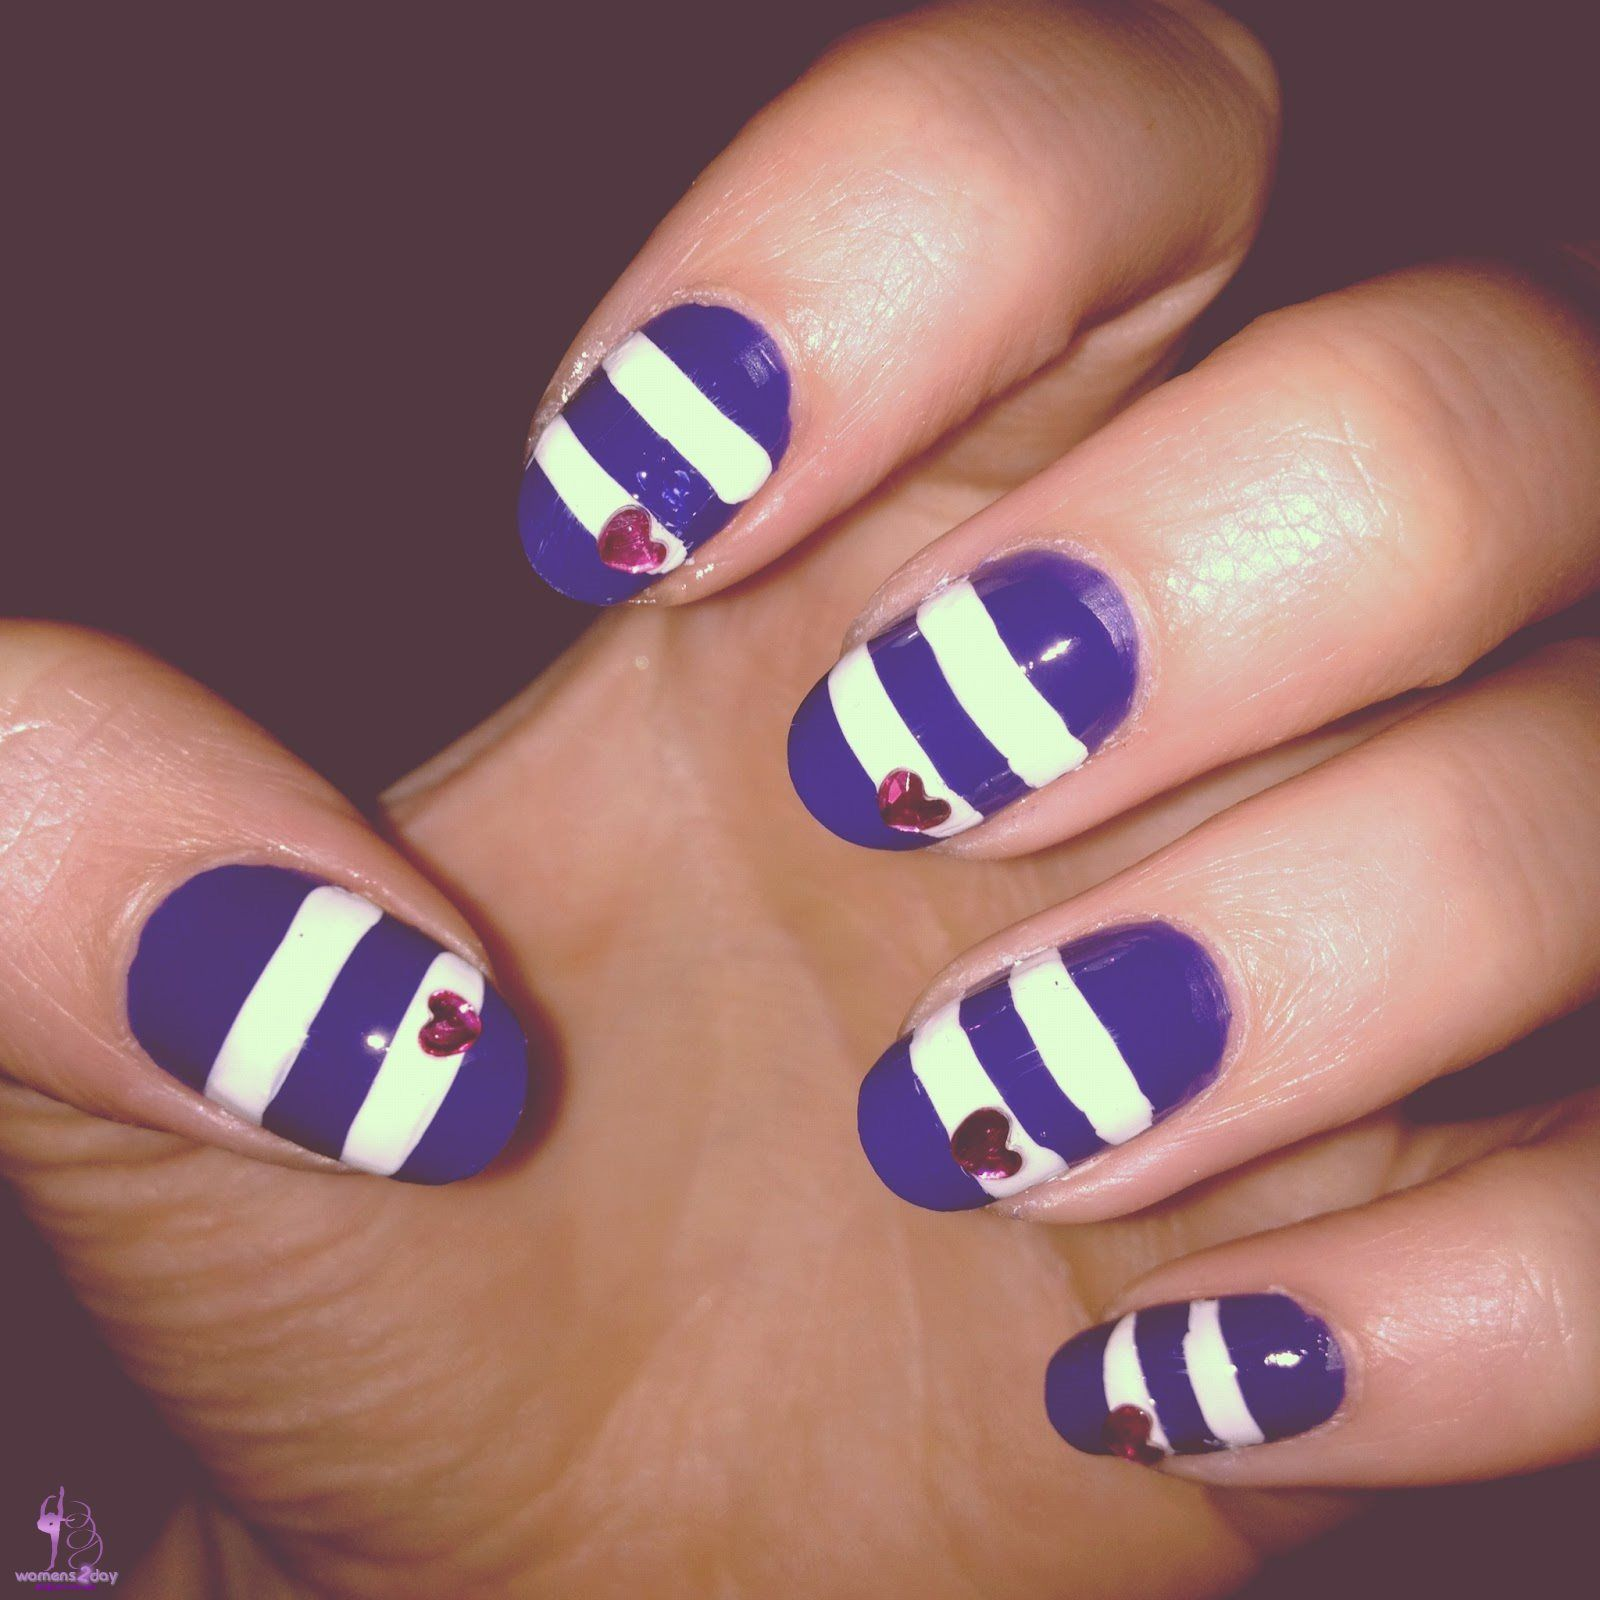 Get Exciting Nails Fashion Trend 2014 Sexy Striped Nail Art Design